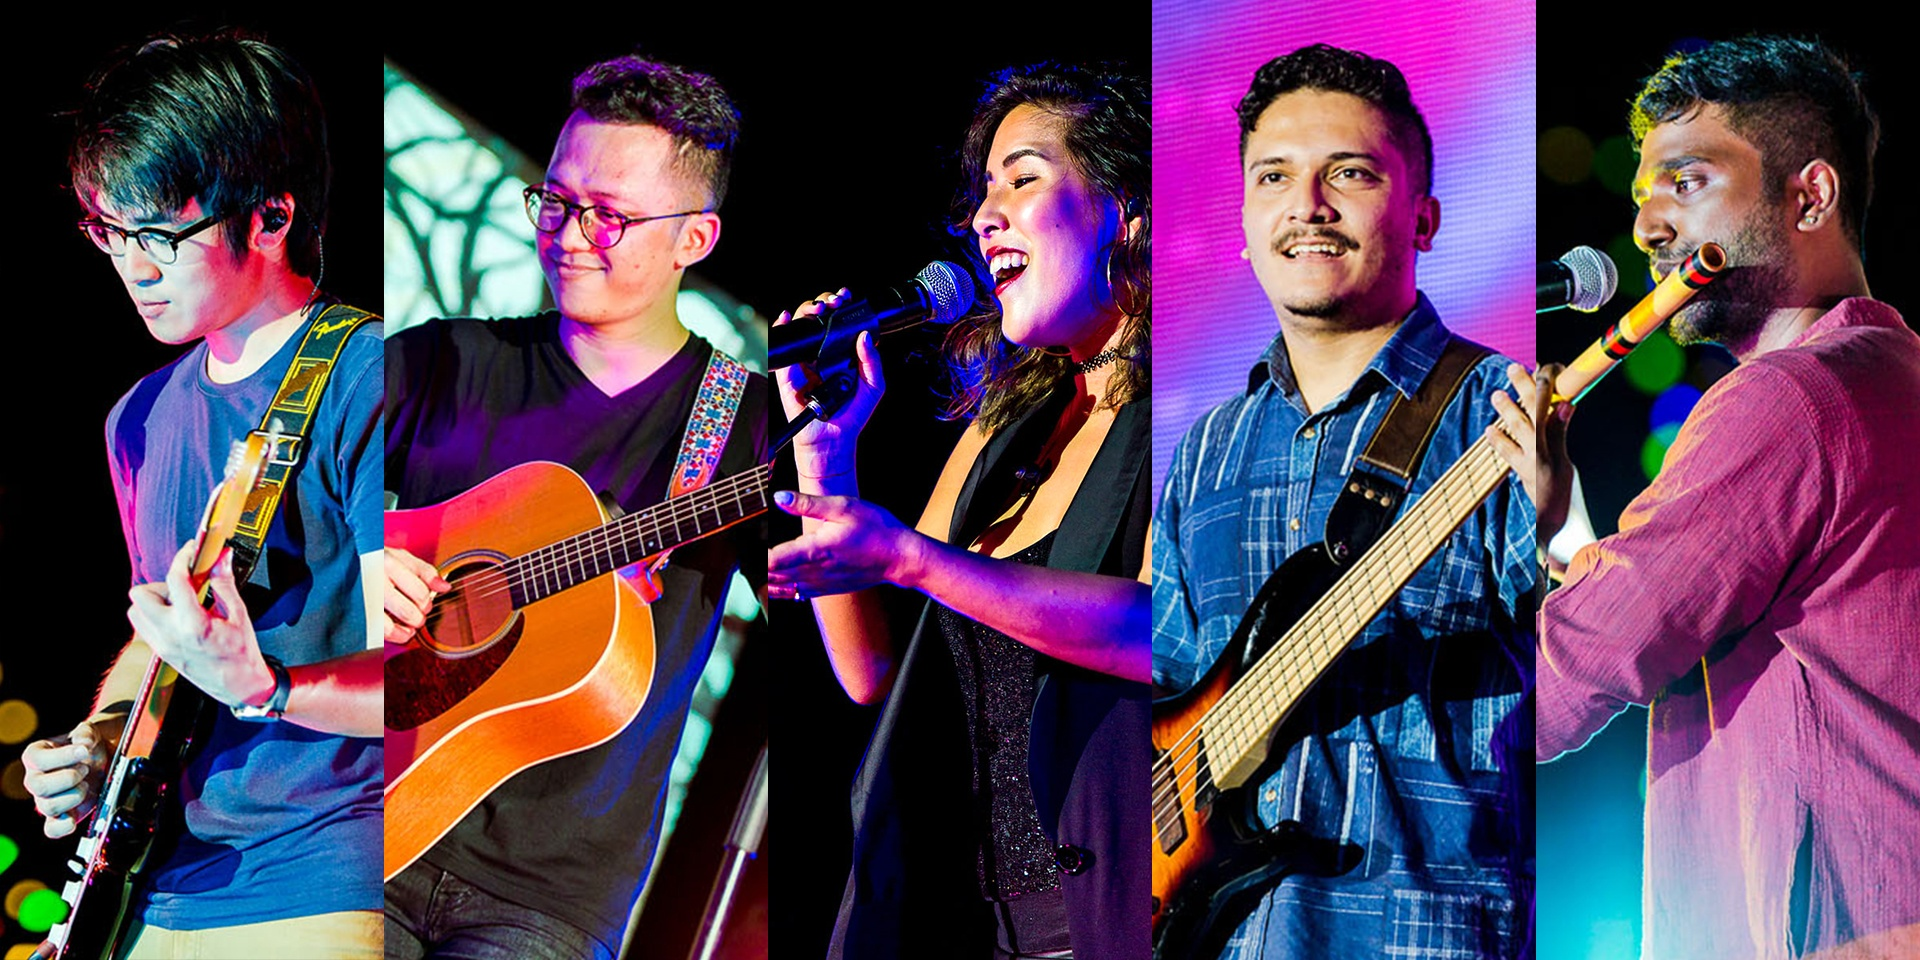 PHOTO GALLERY: Singapore Rhapsodies with Charlie Lim, Sezairi, Daphne Khoo, Take Two and more